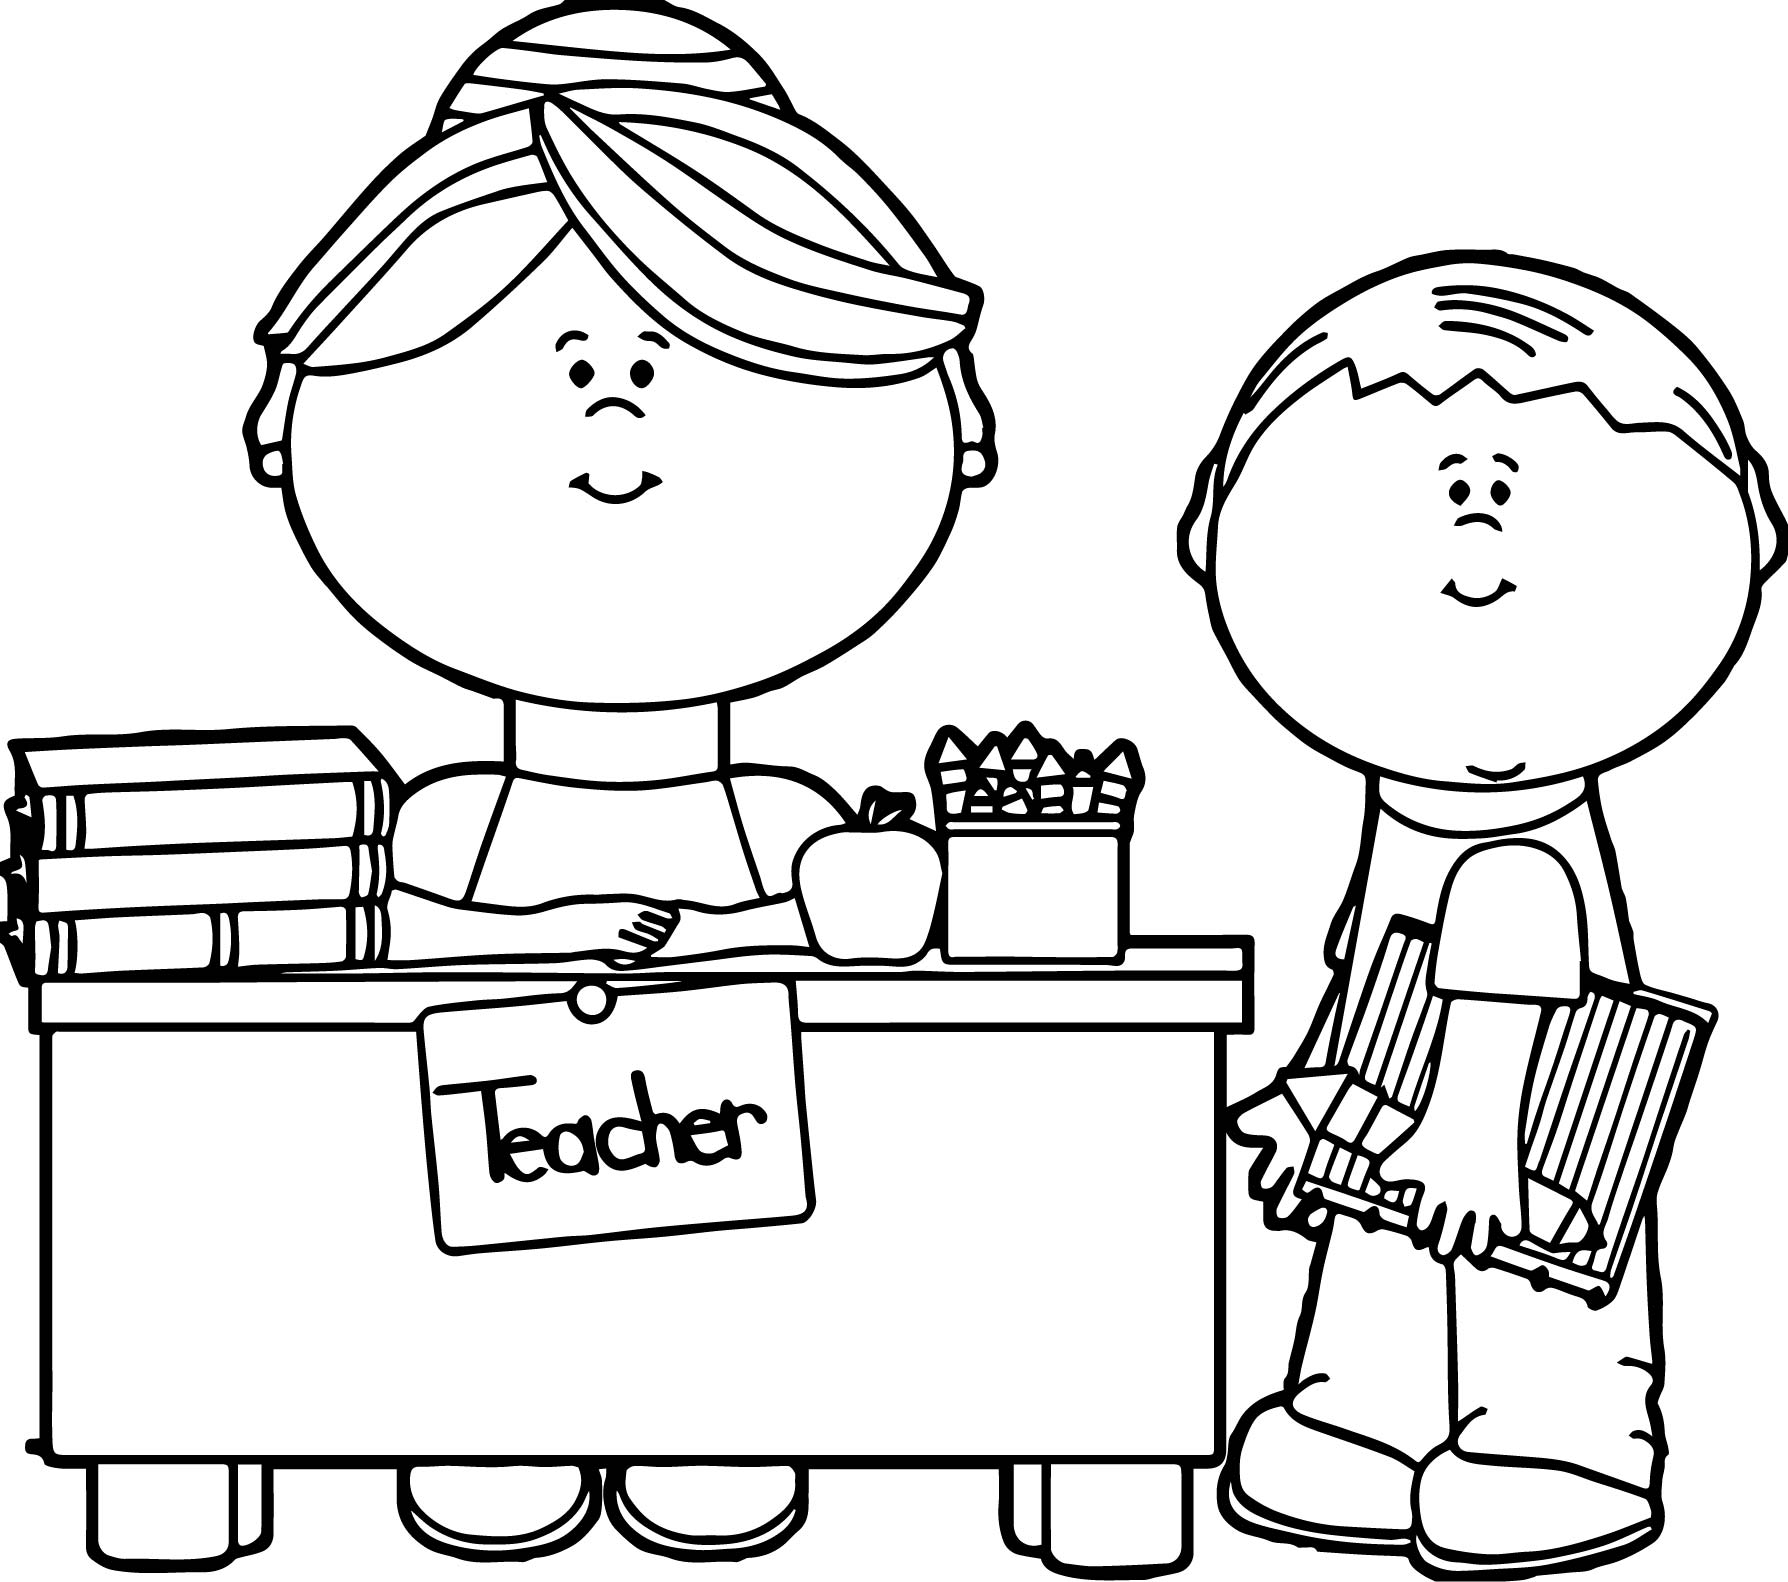 coloring pages of teachers - photo#3